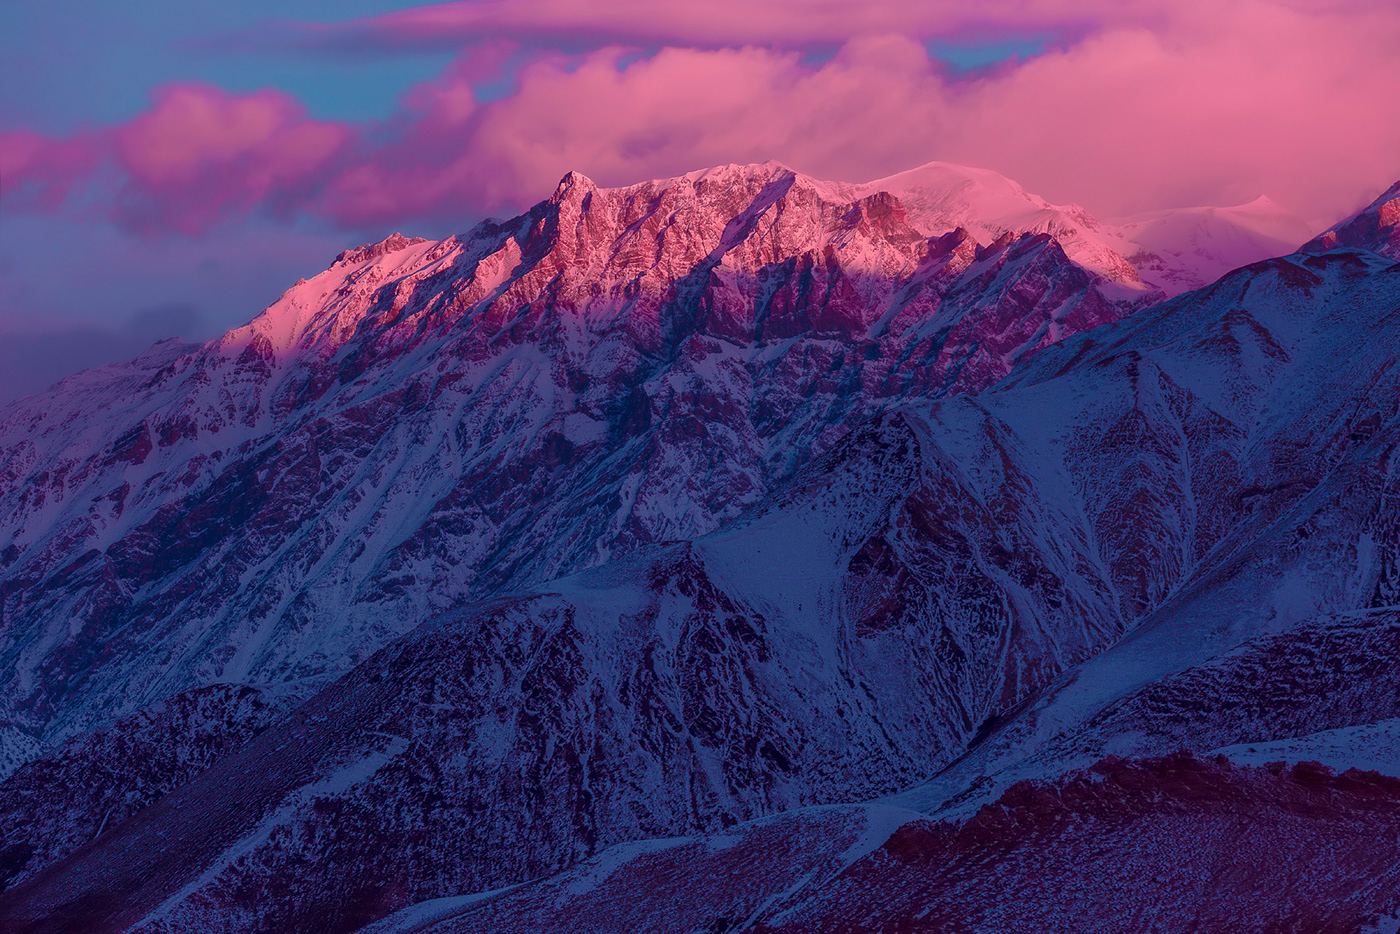 sunrise landscape in the himalayas, pink mountains